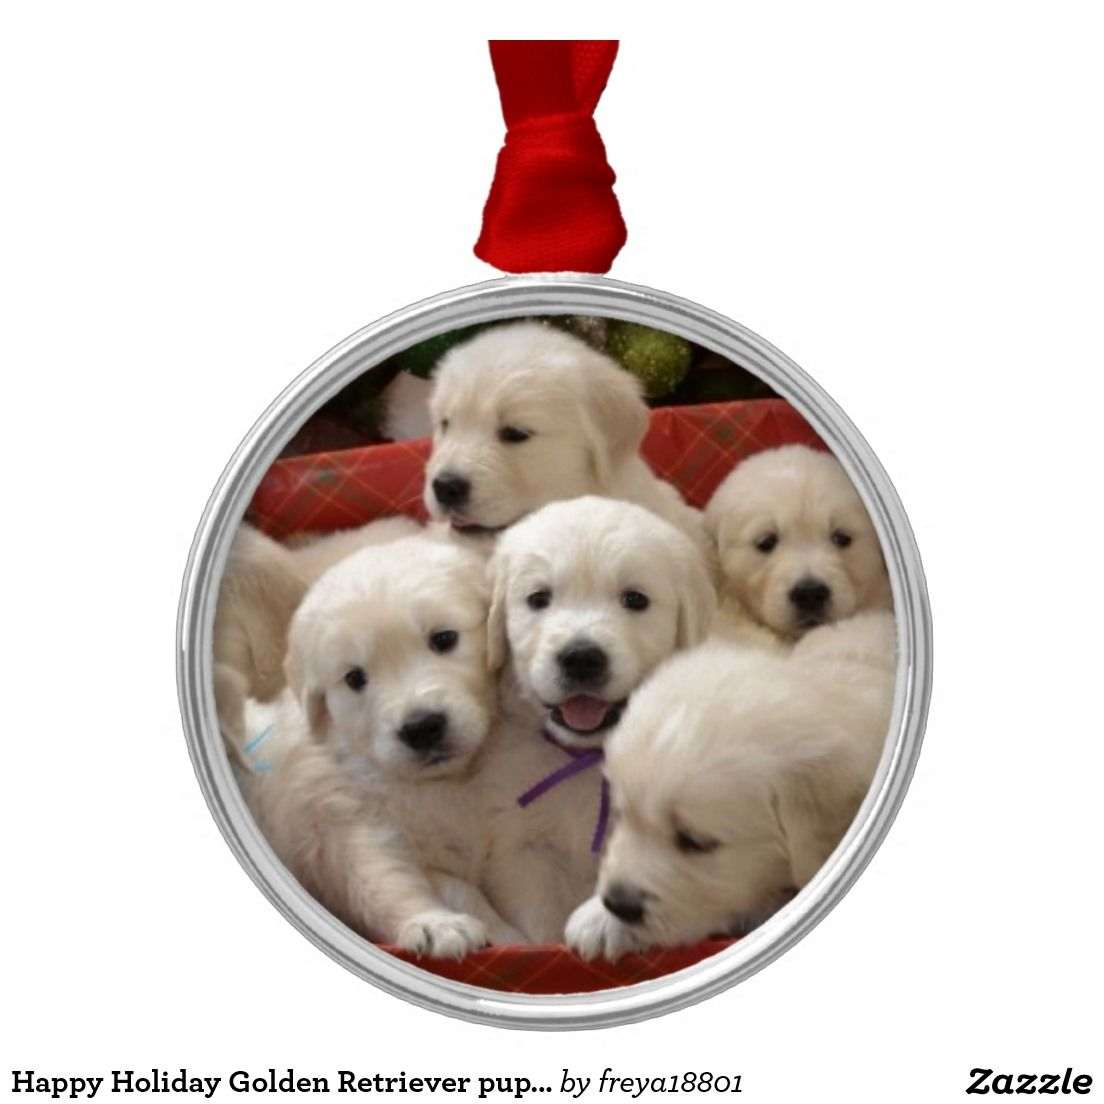 Happy Holiday Golden Retriever Puppies Metal Ornament Zazzle Com Golden Retriever Christmas Ornament Golden Retriever Christmas Golden Retriever